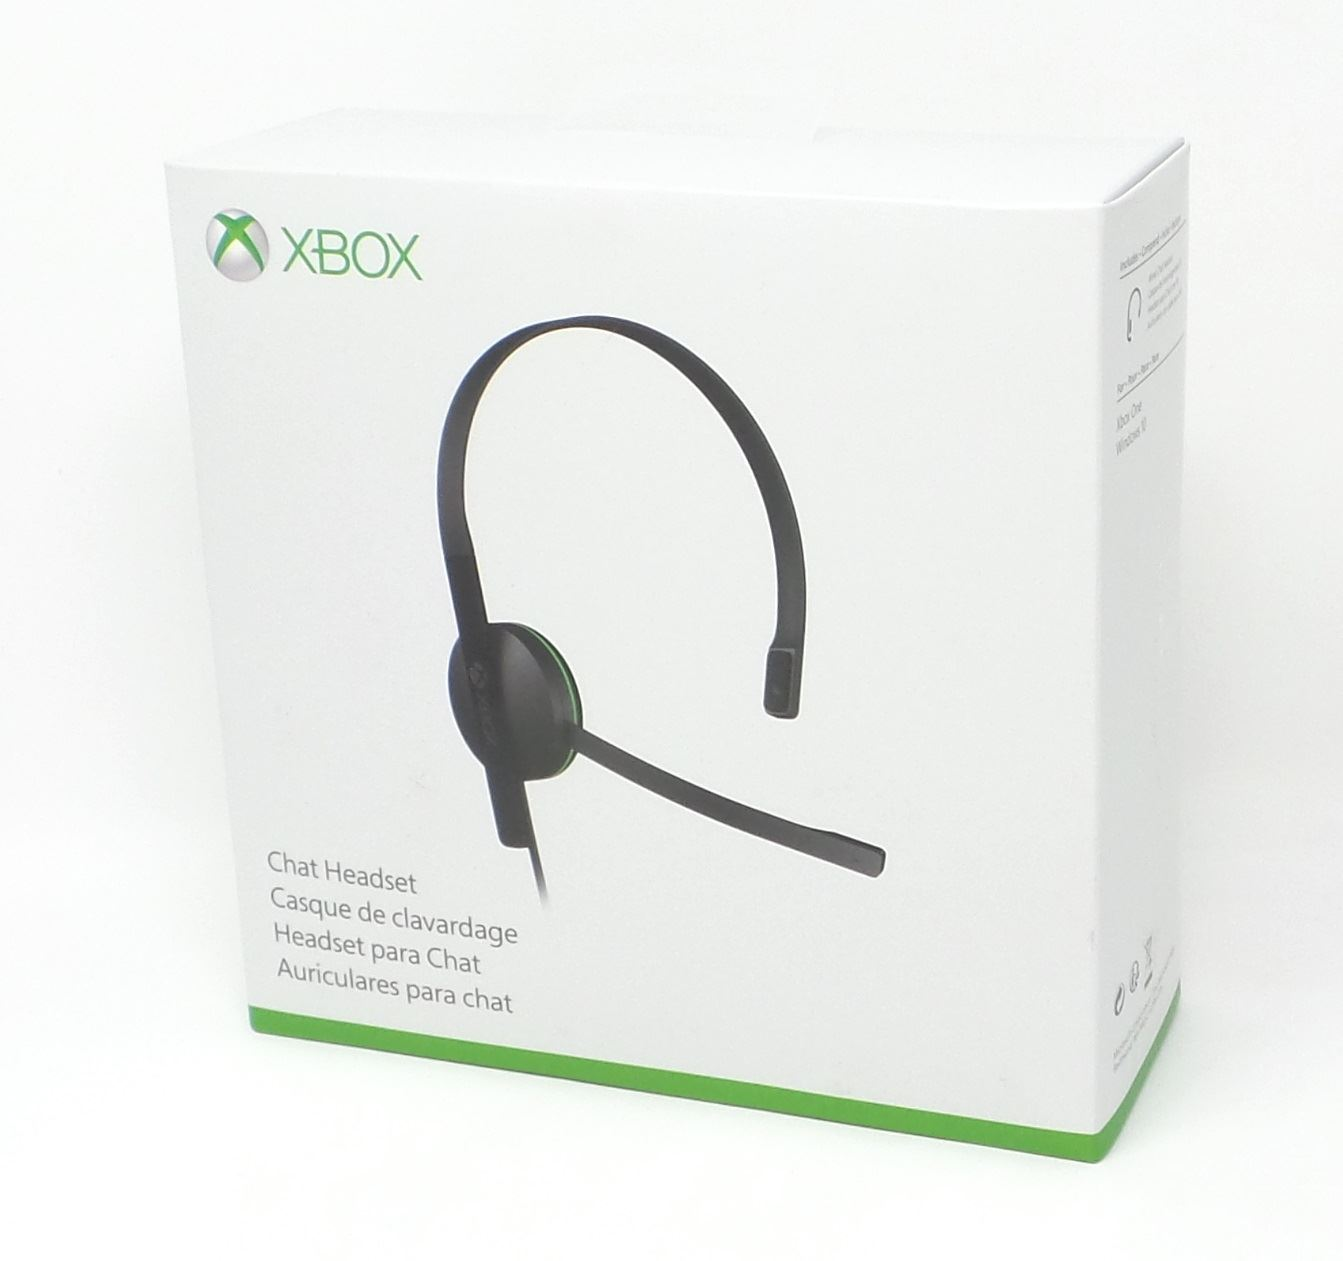 microsoft xbox one chat headset wired mono volume control mic s5v xbox  cable schematic xbox one